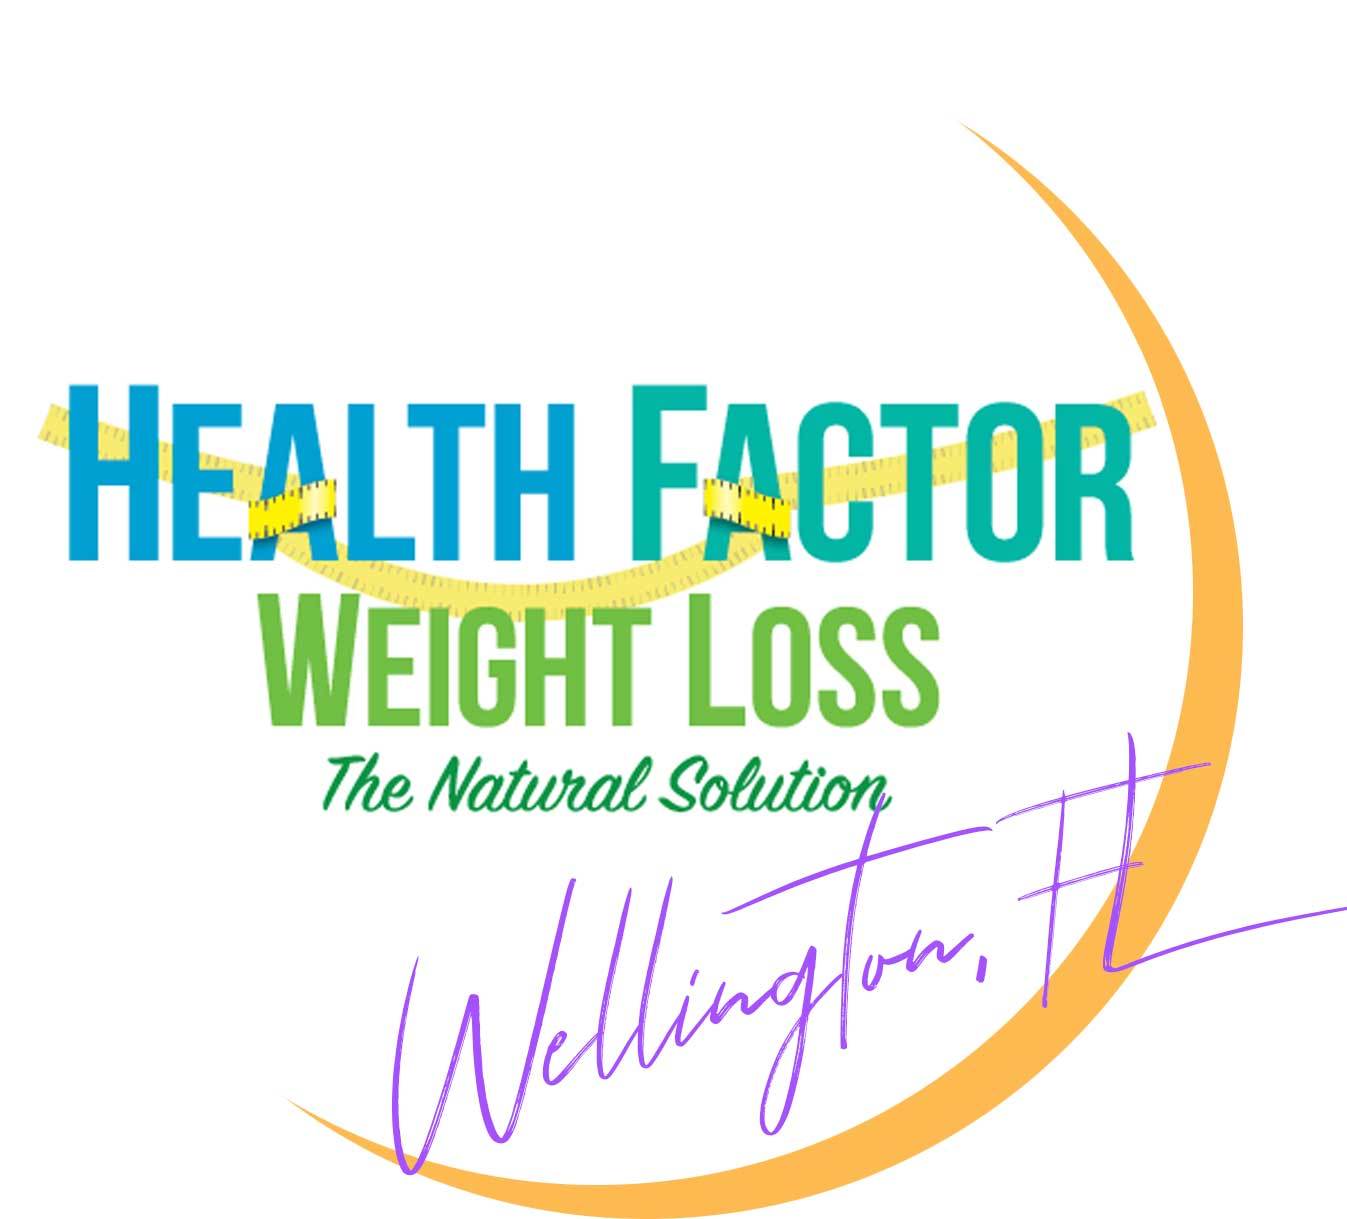 wellingtonn weight loss